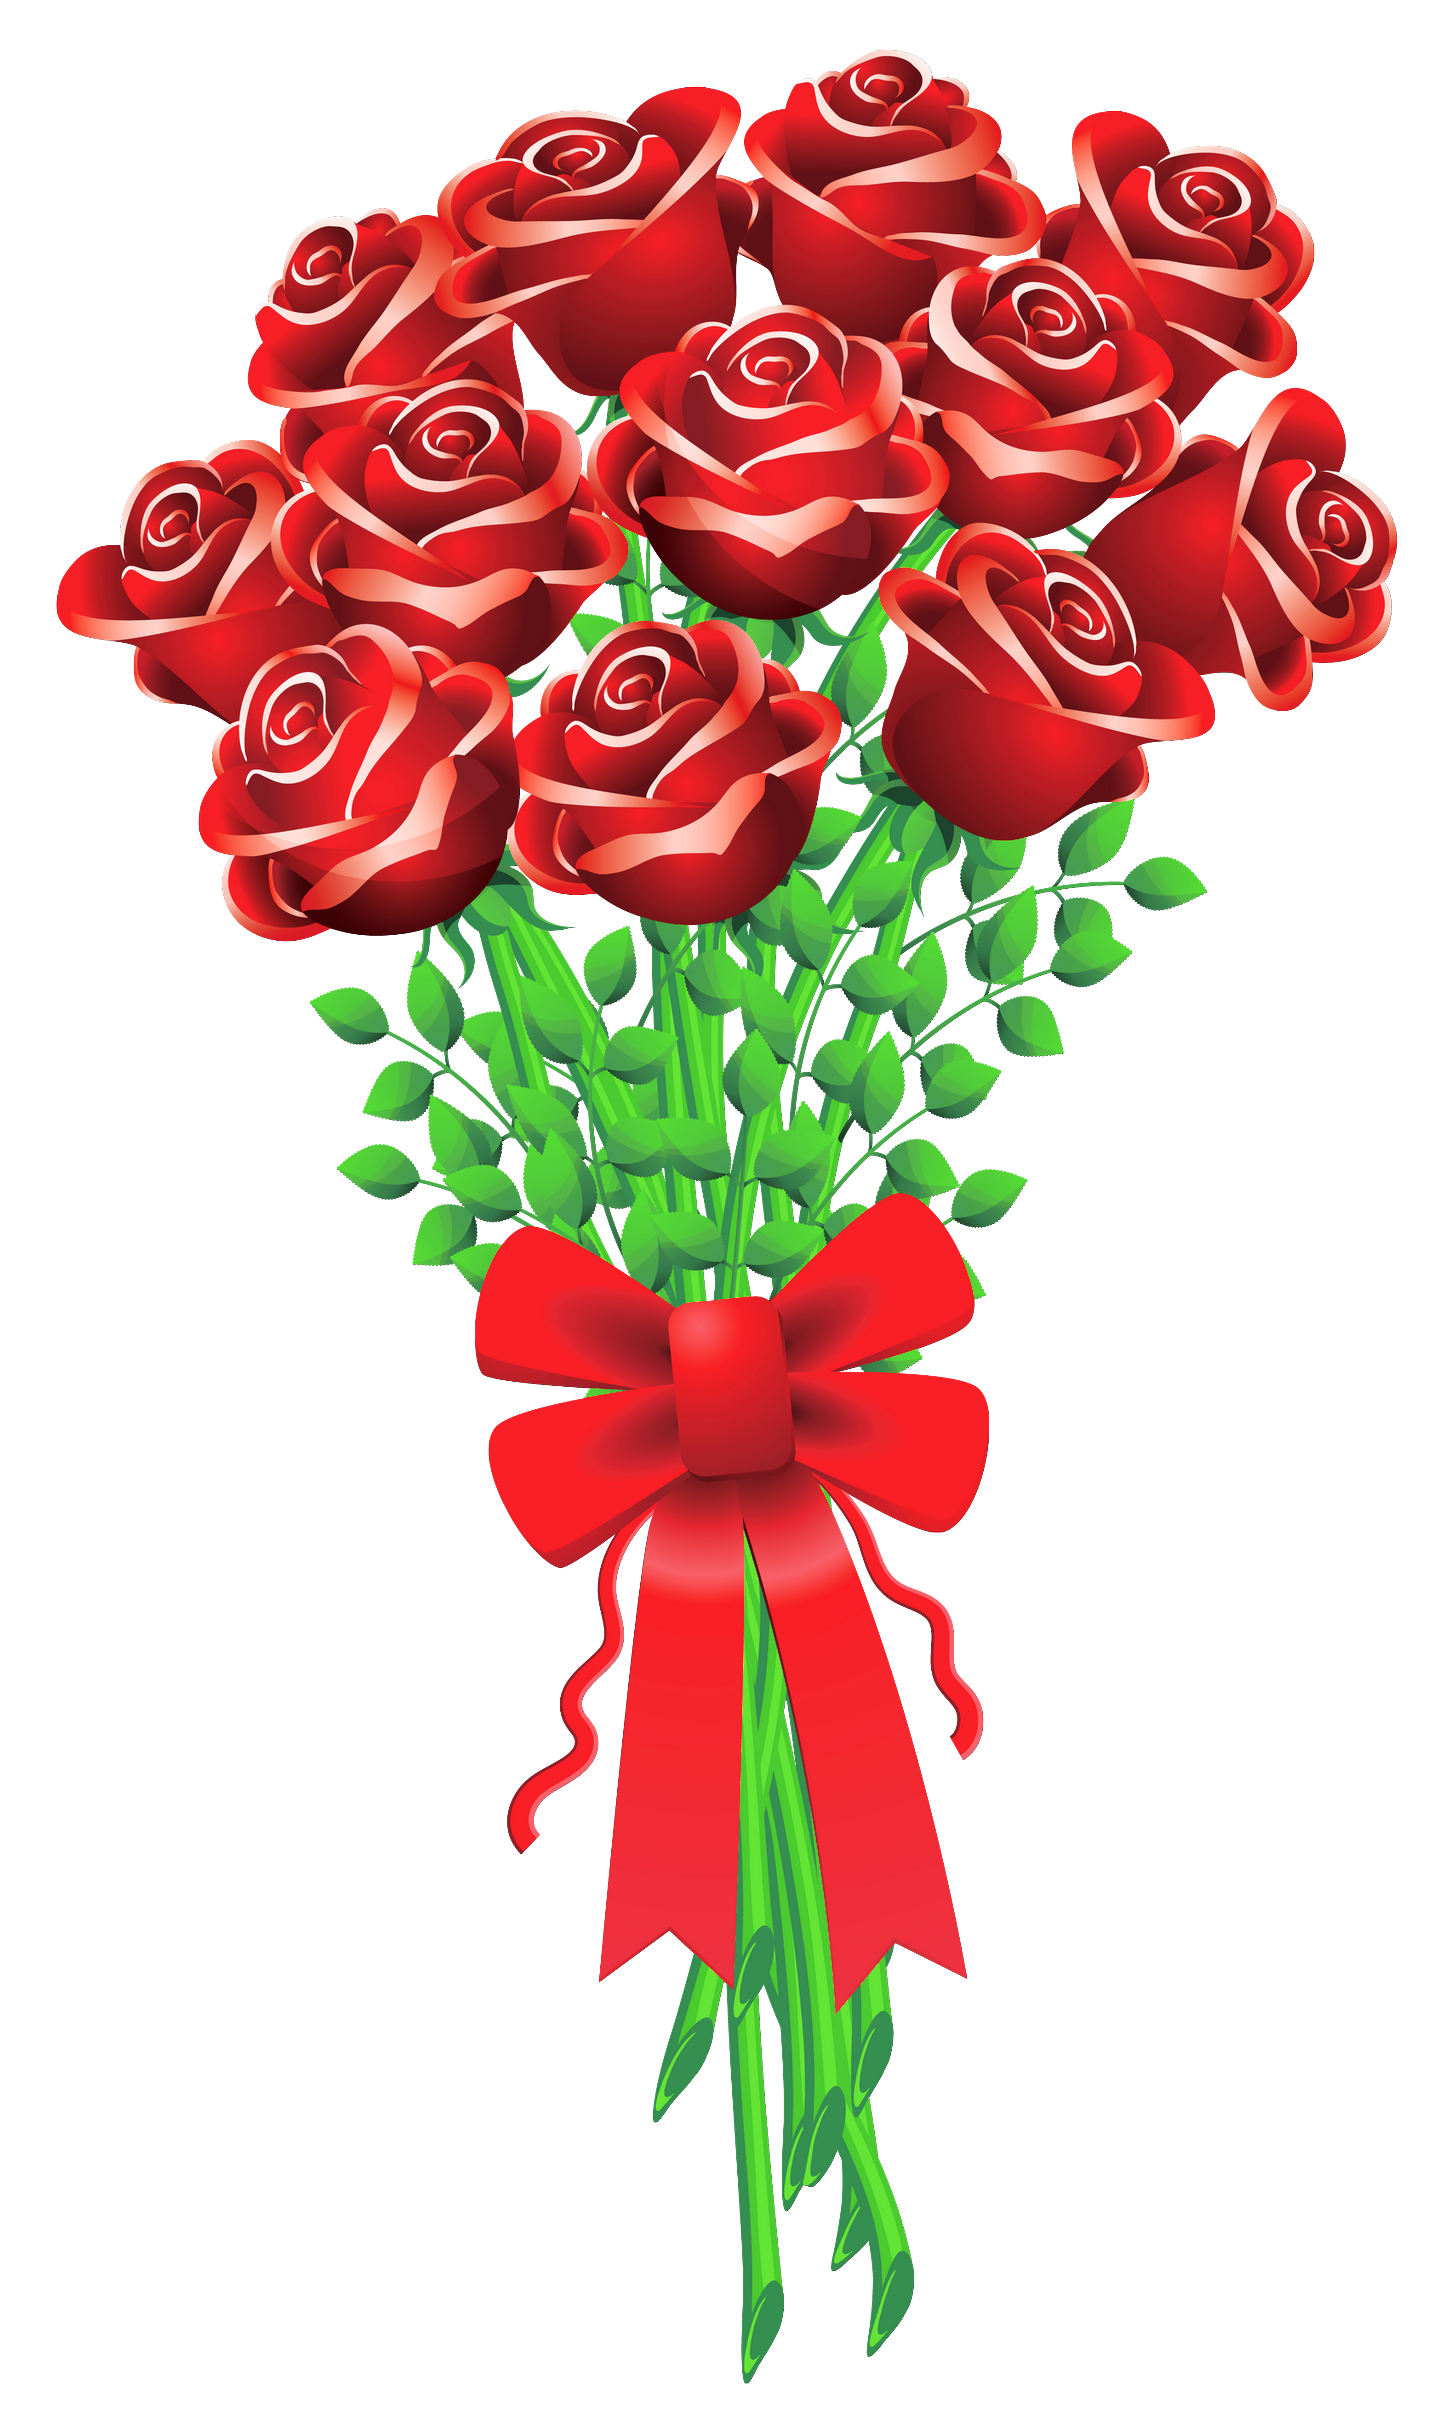 Rose clipart cartoon. Roses bouquet kid rosa